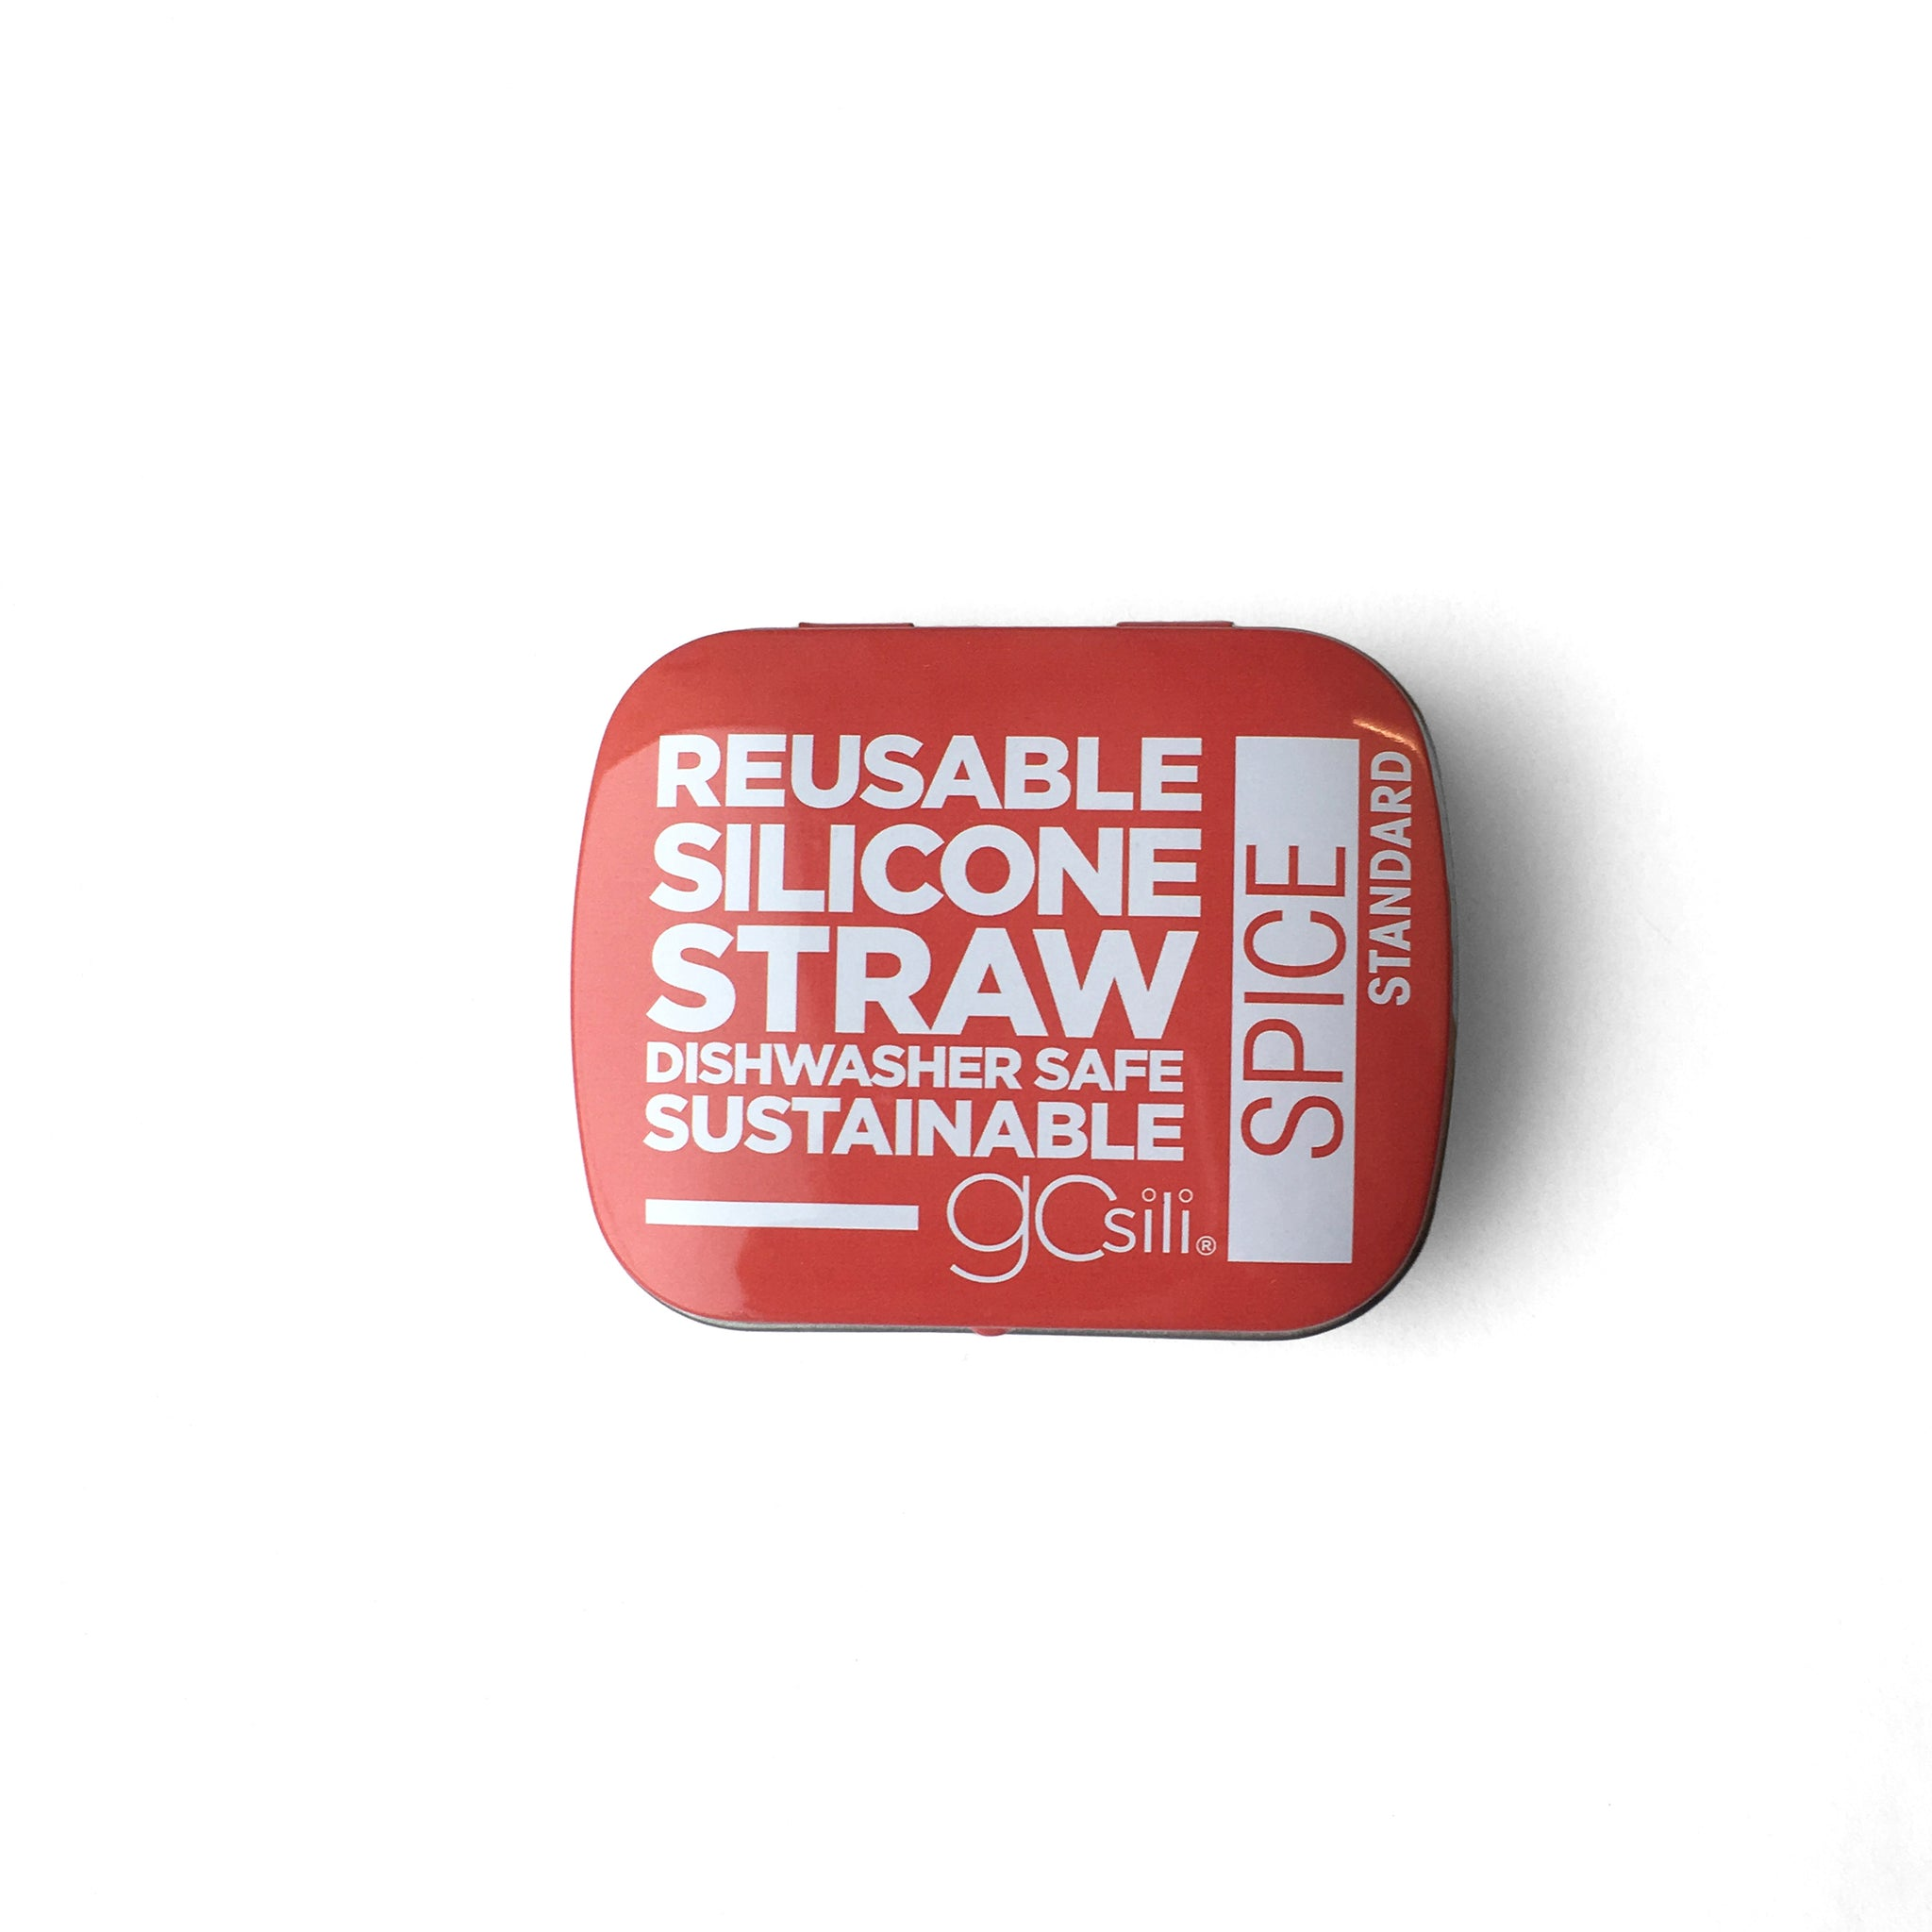 Gosili Portable and Reusable Silicone Straw with Travel Case